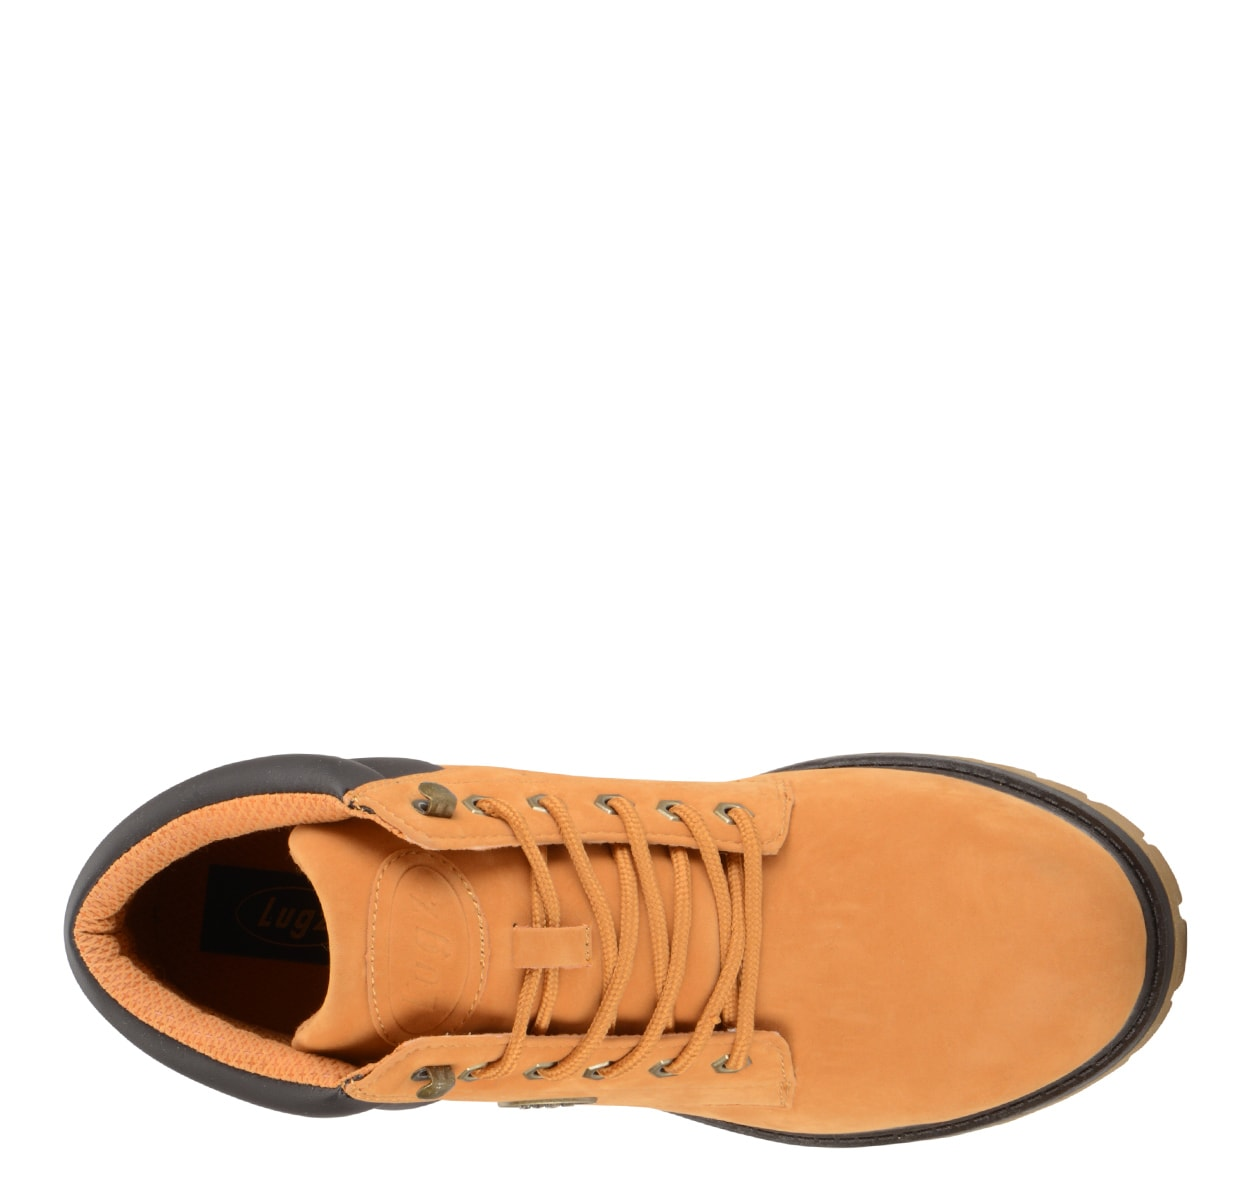 Men's Nile Mid Chukka Boot (Choose Your Color: GOLDEN WHEAT/BARK/GUM, Choose Your Size: 7.5)